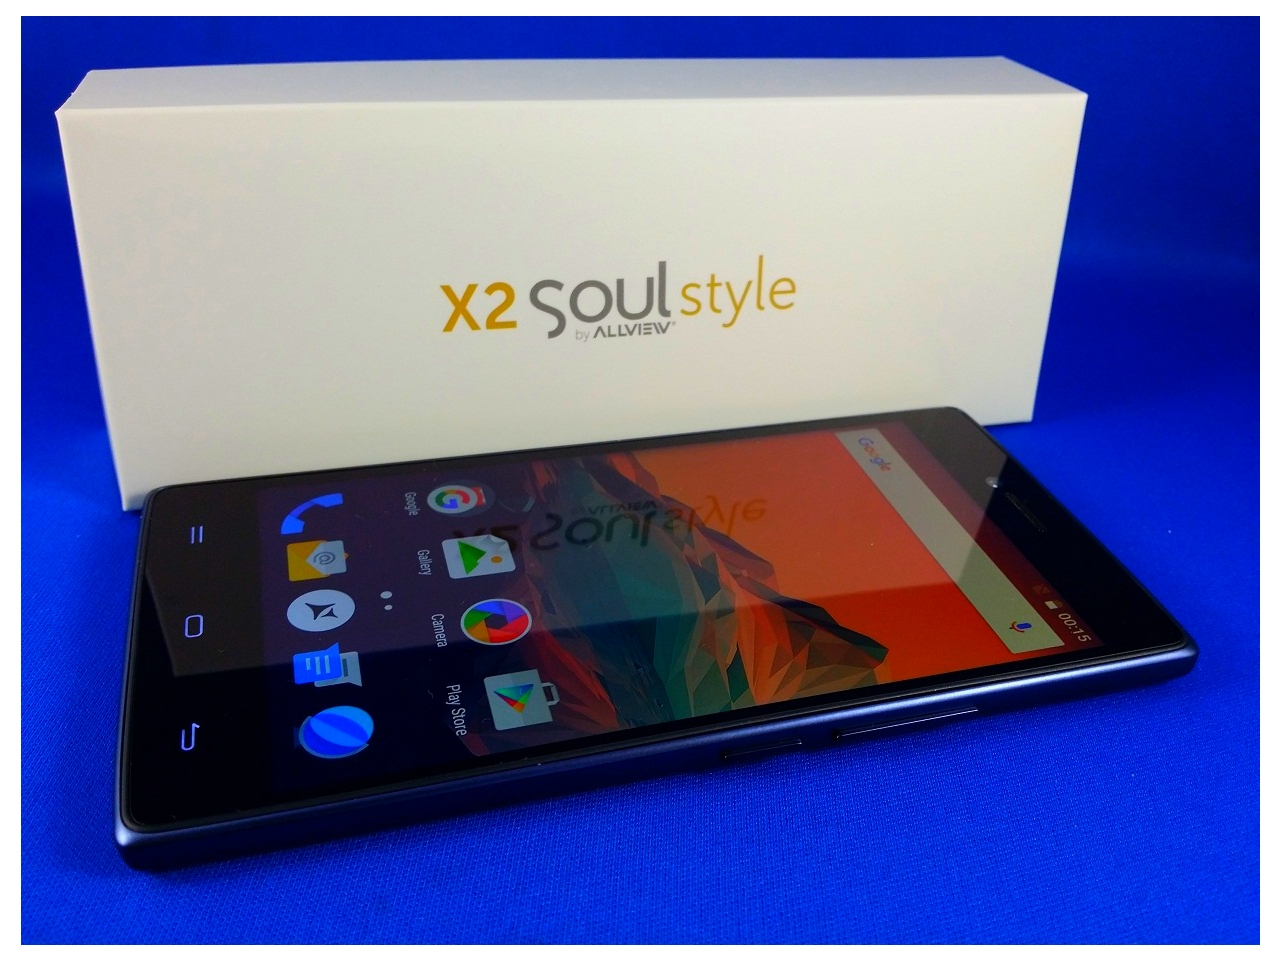 20151201_124508 Allview X2 Soul Style CONCURS si unboxing